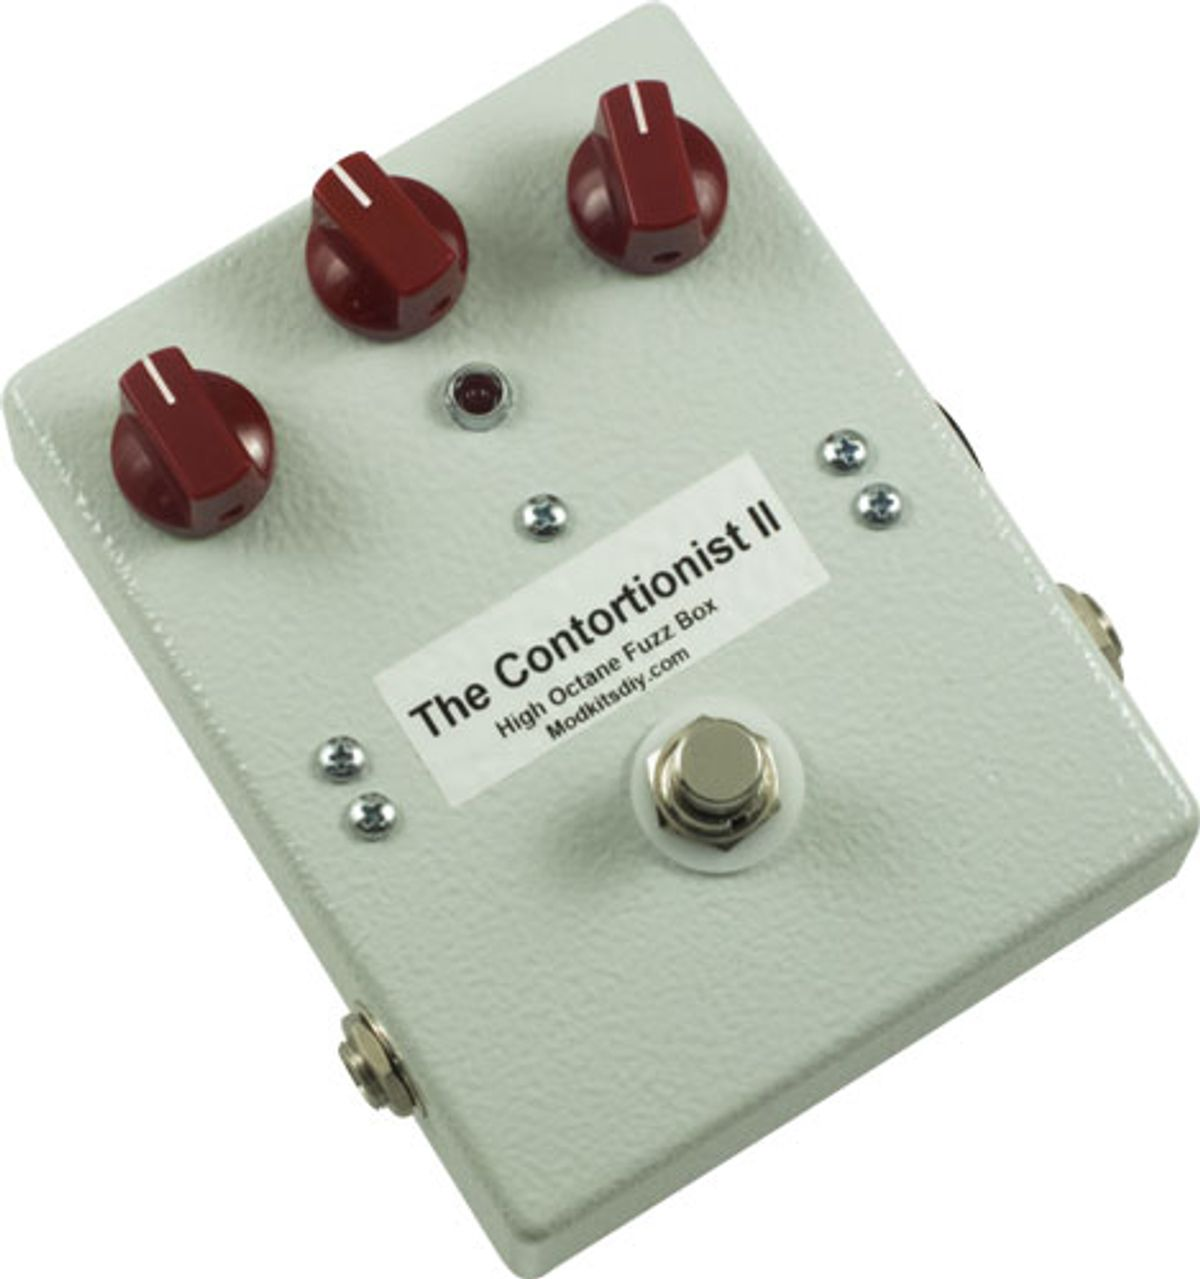 MOD Kits DIY Introduces the Contortionist II